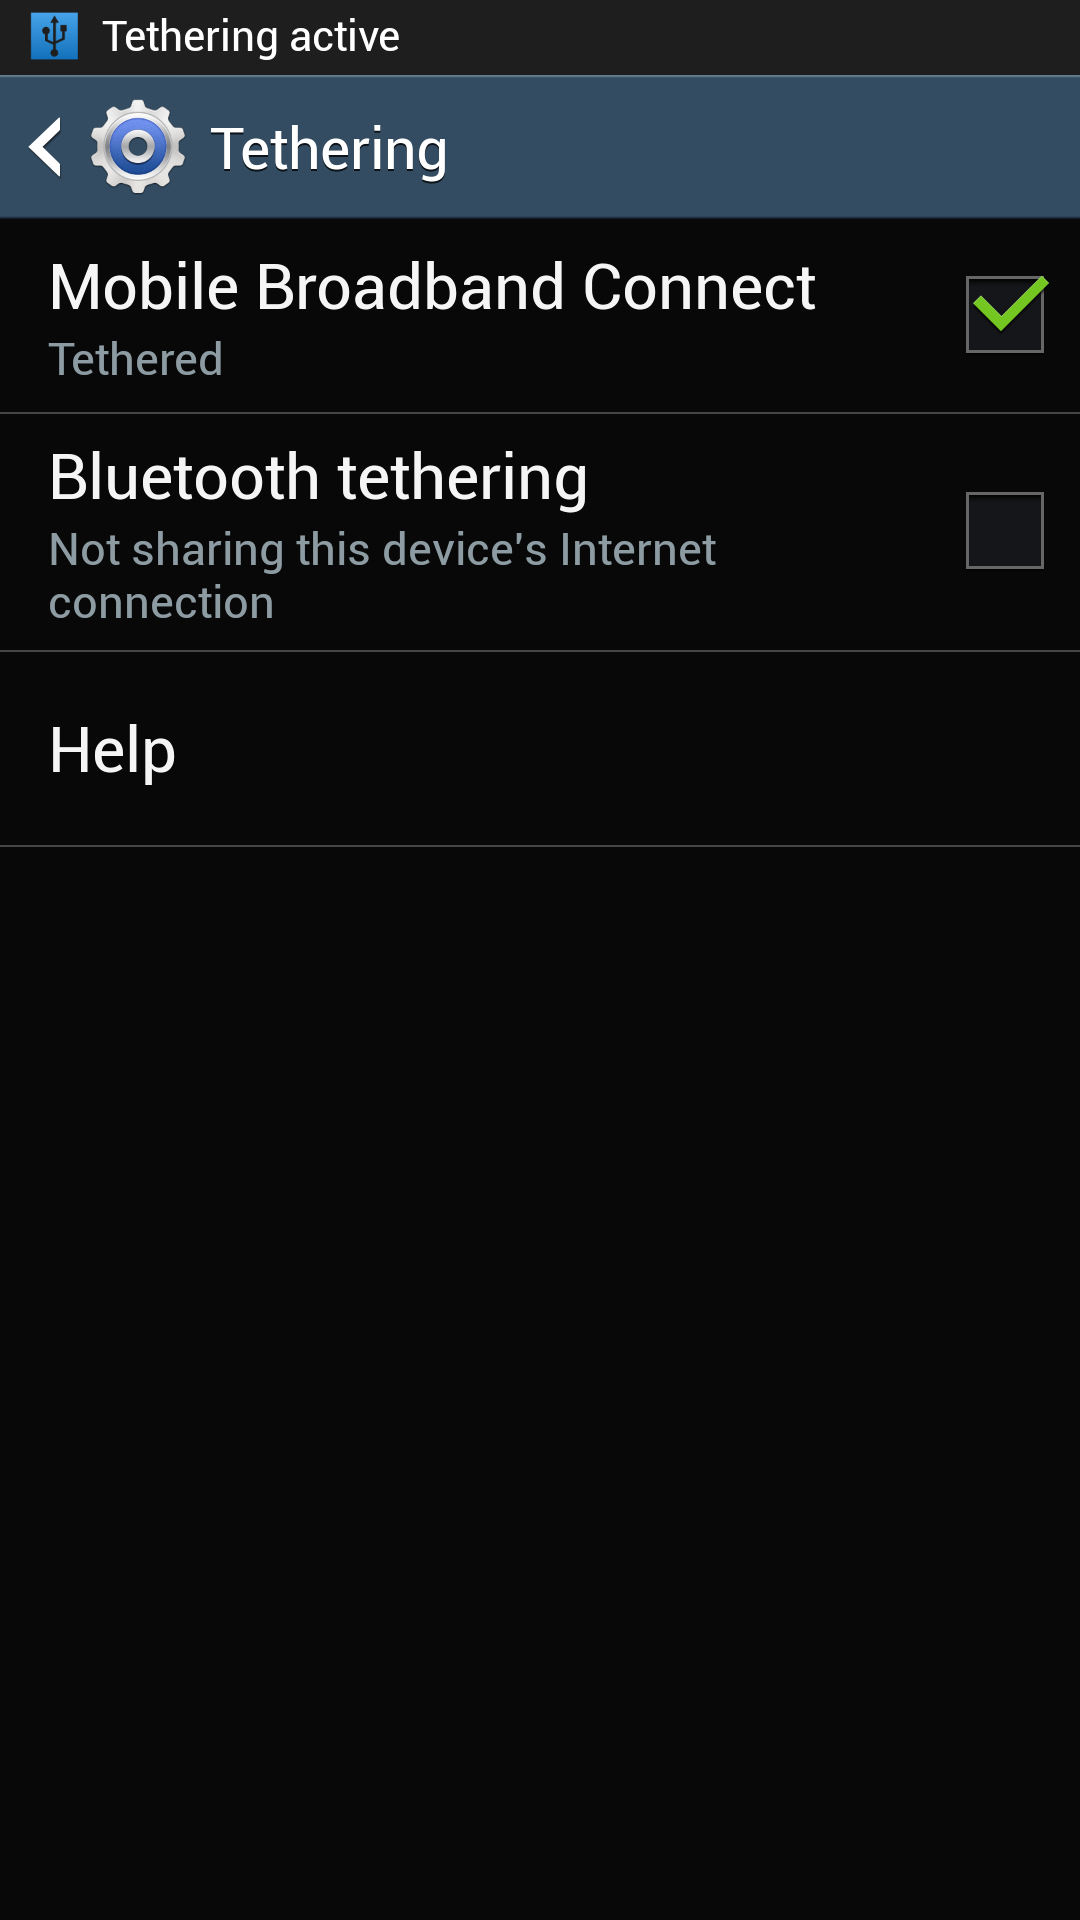 Galaxy S4 USB tethering is active